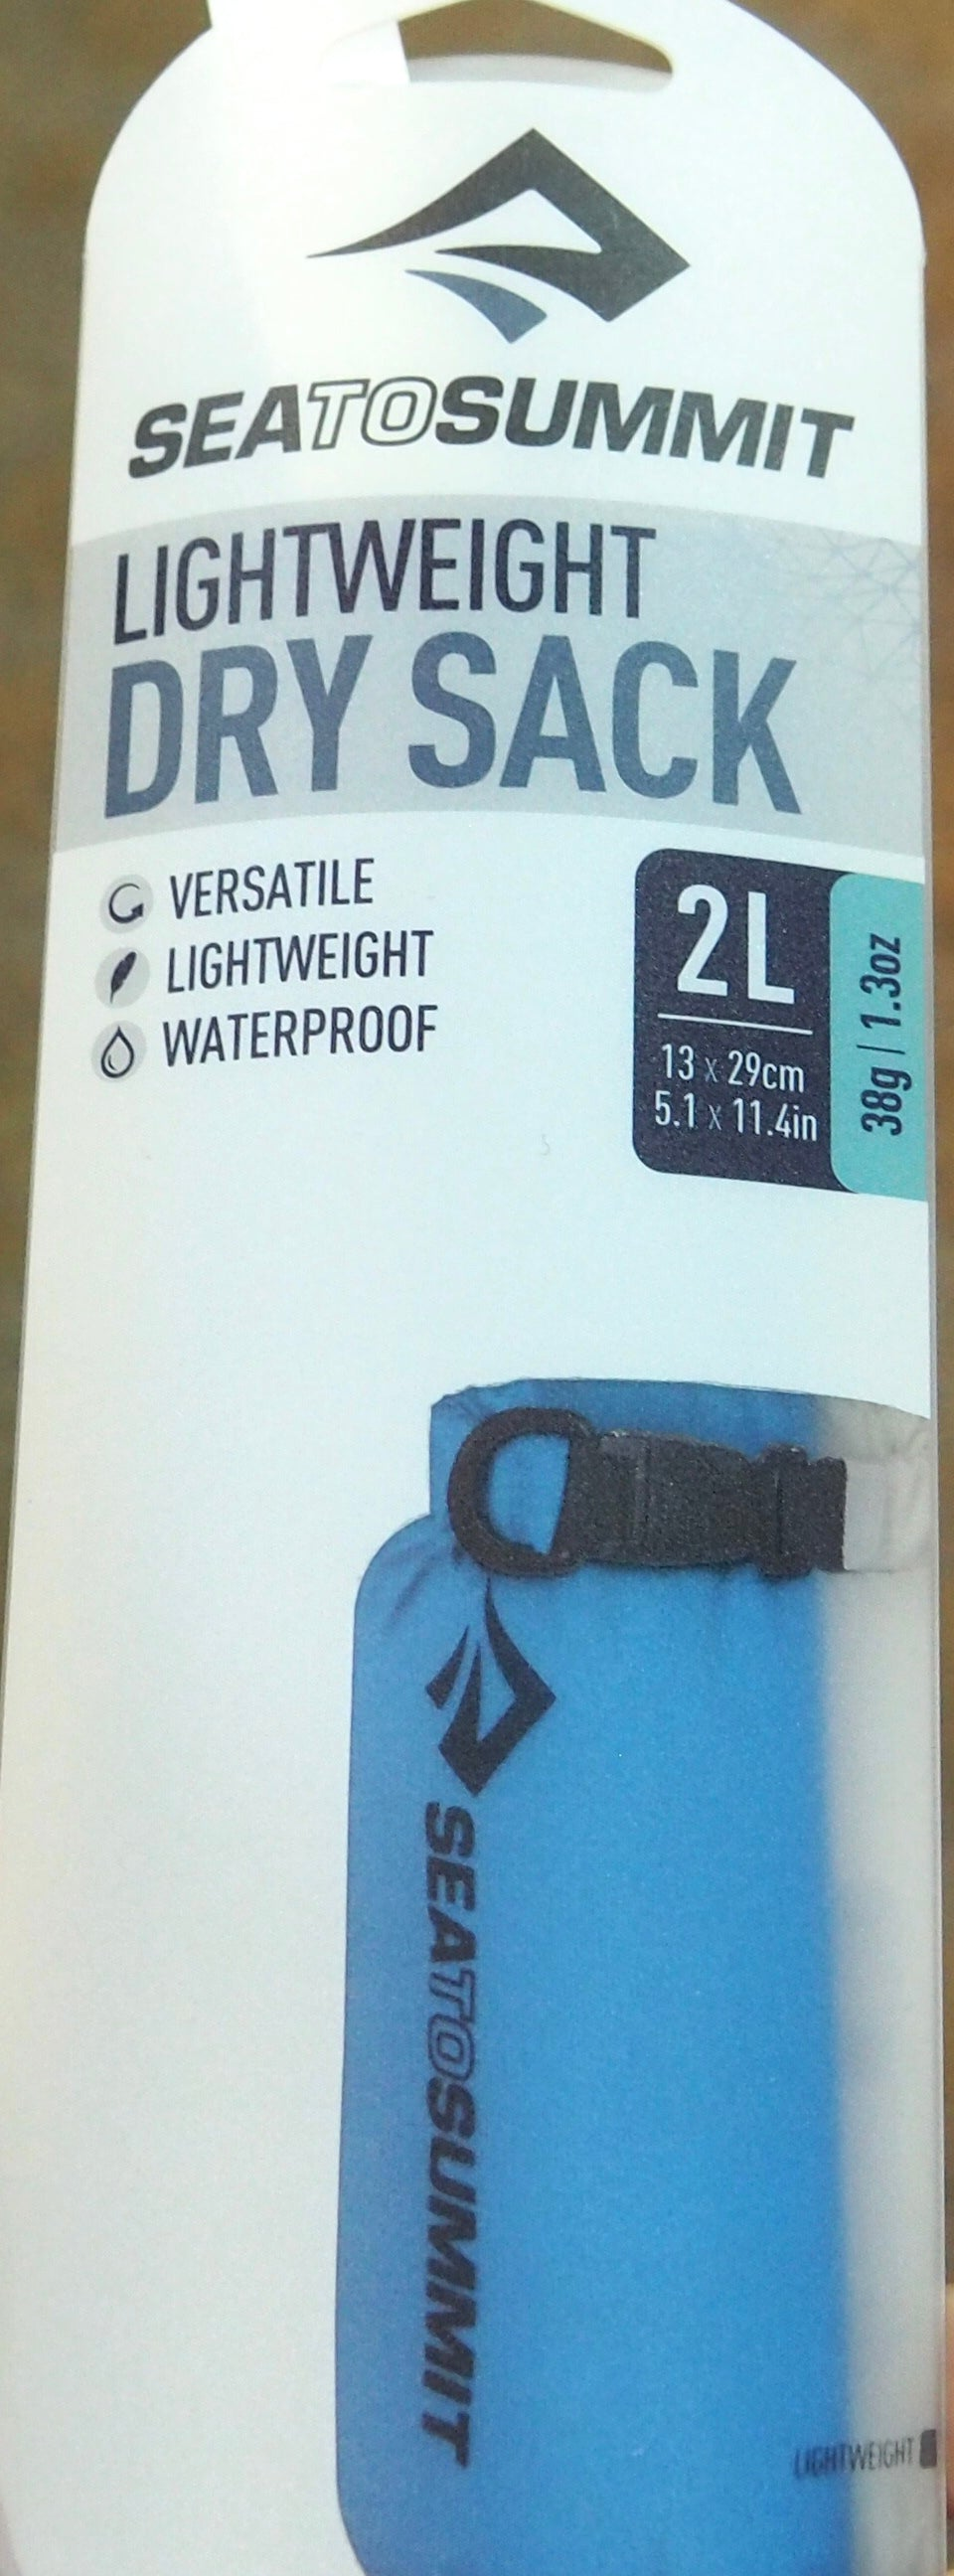 Sea to Summit Lightweight Dry Sack 2 L